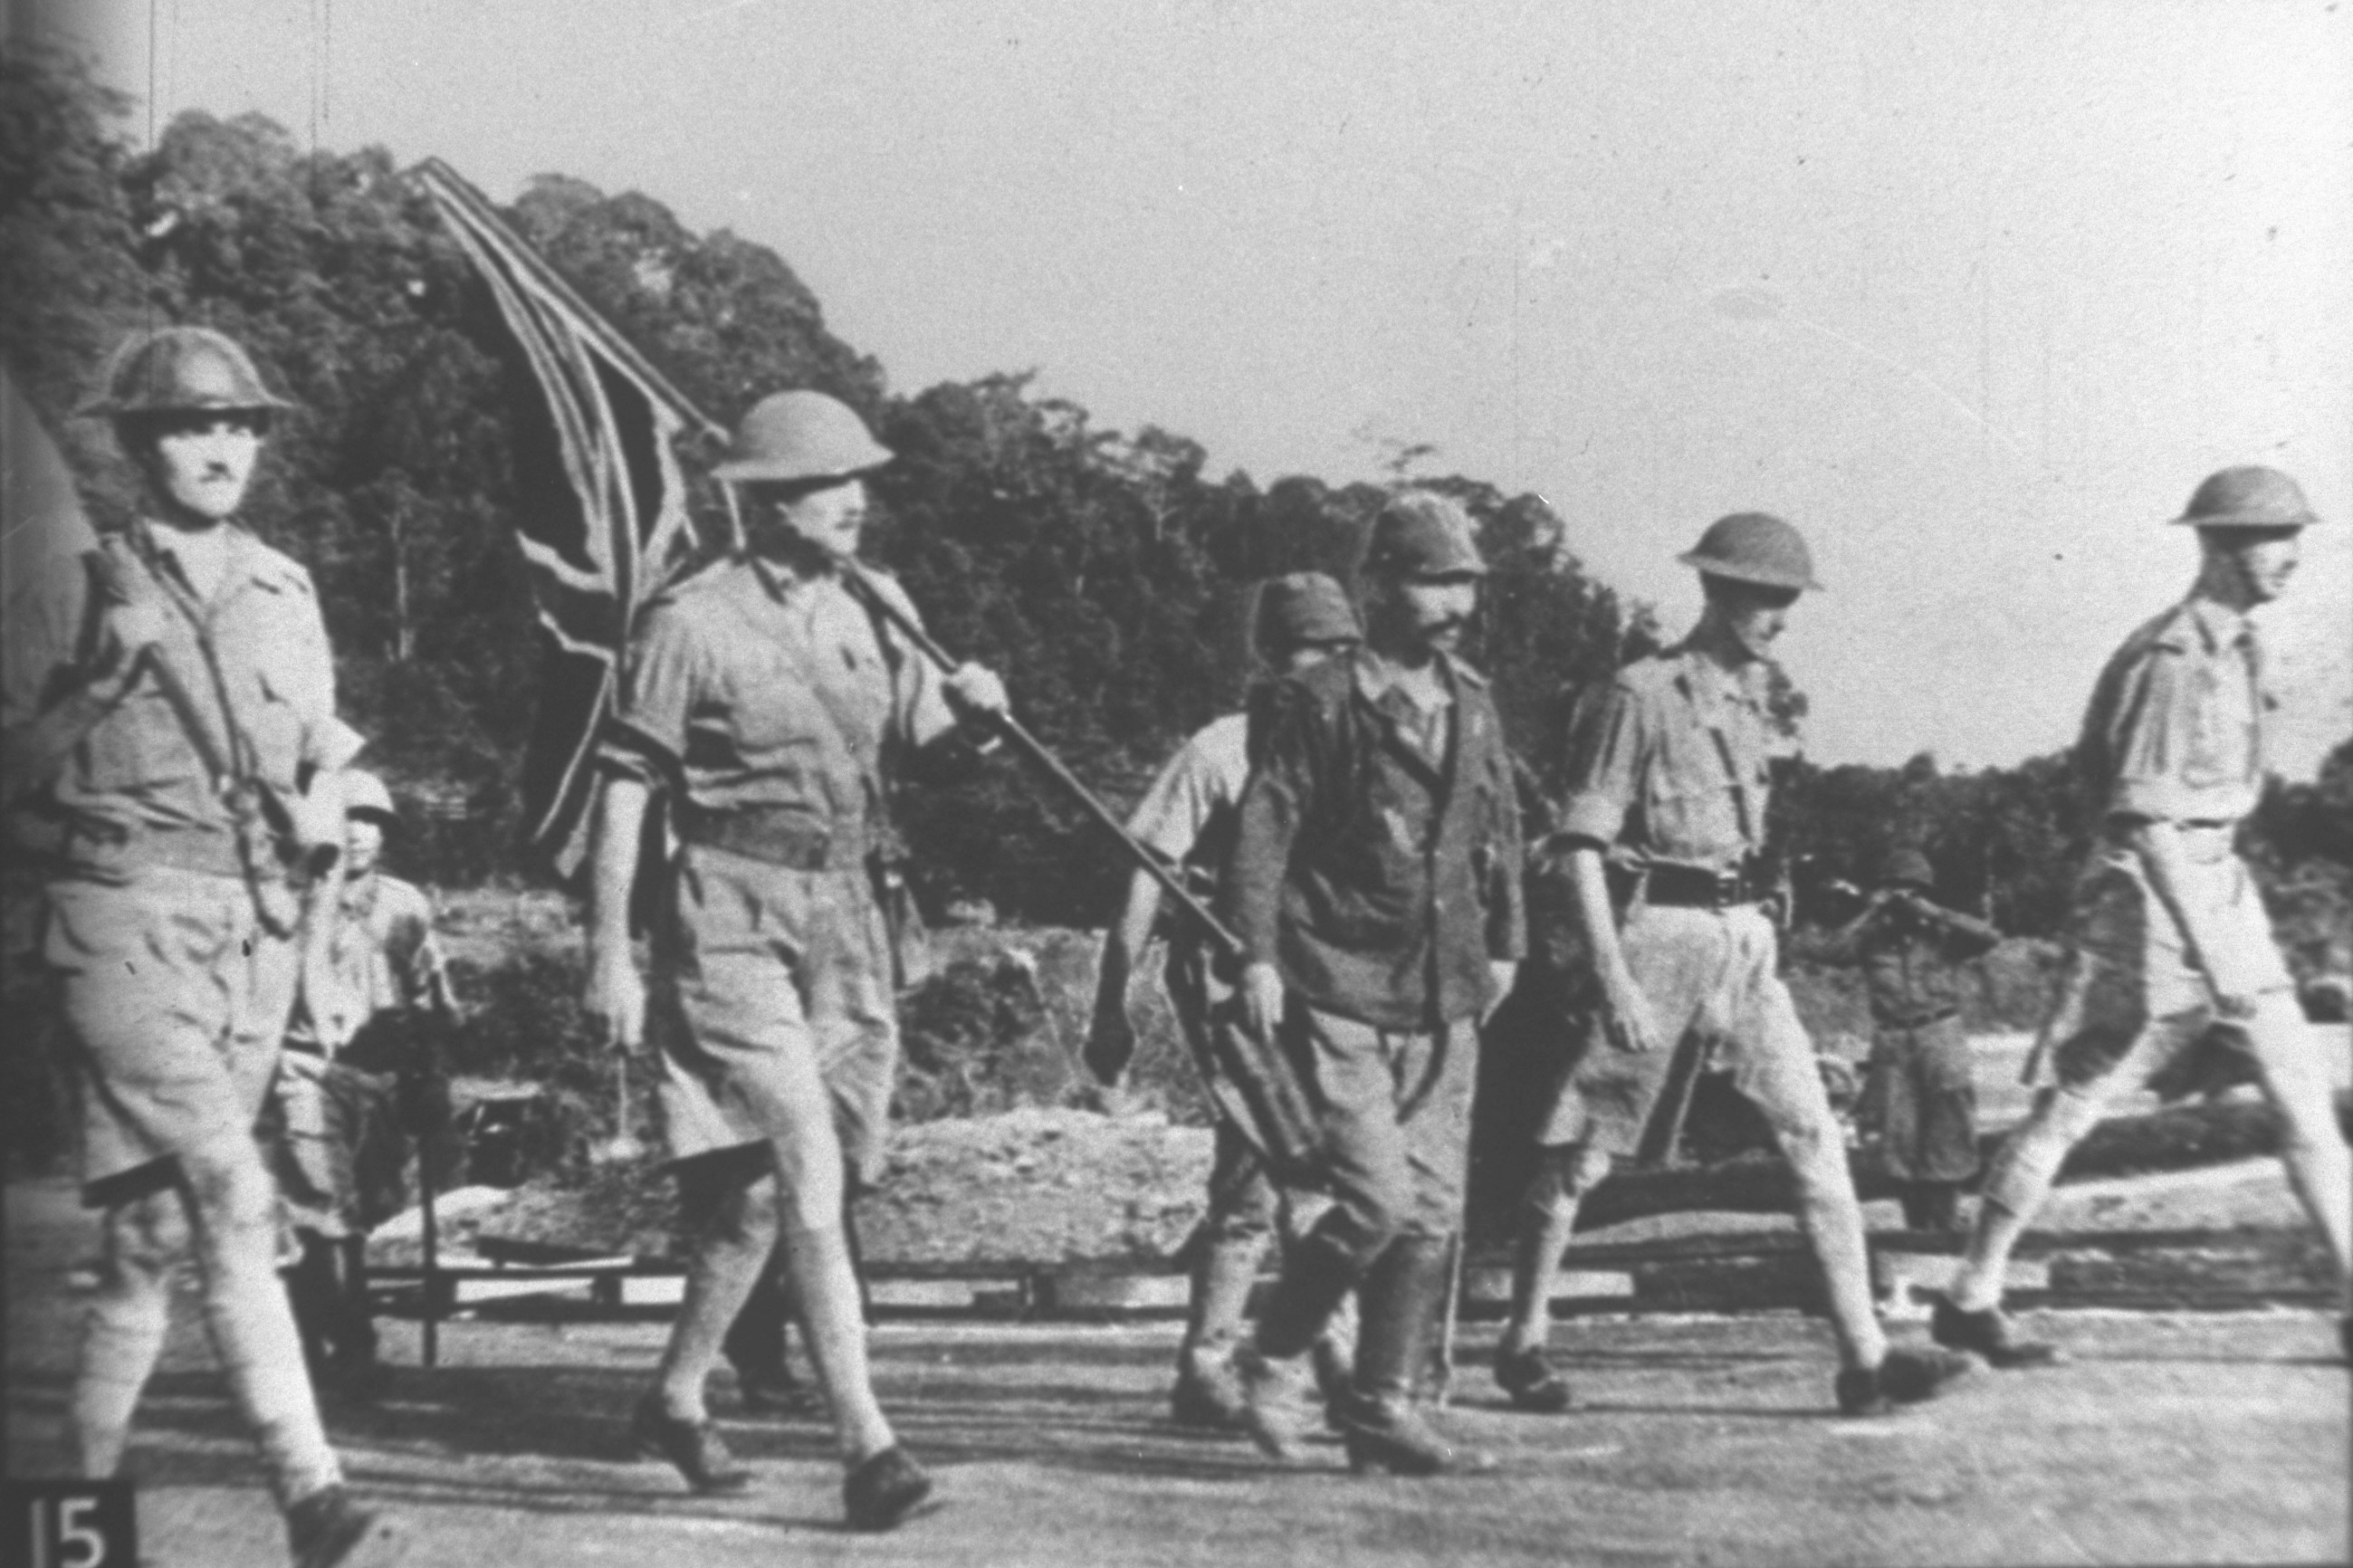 Lieutenant General Percival (right) and other British officers on the way to Ford Factory at Bukit Timah to surrender, marking the beginning of the Japanese Occupation of Singapore